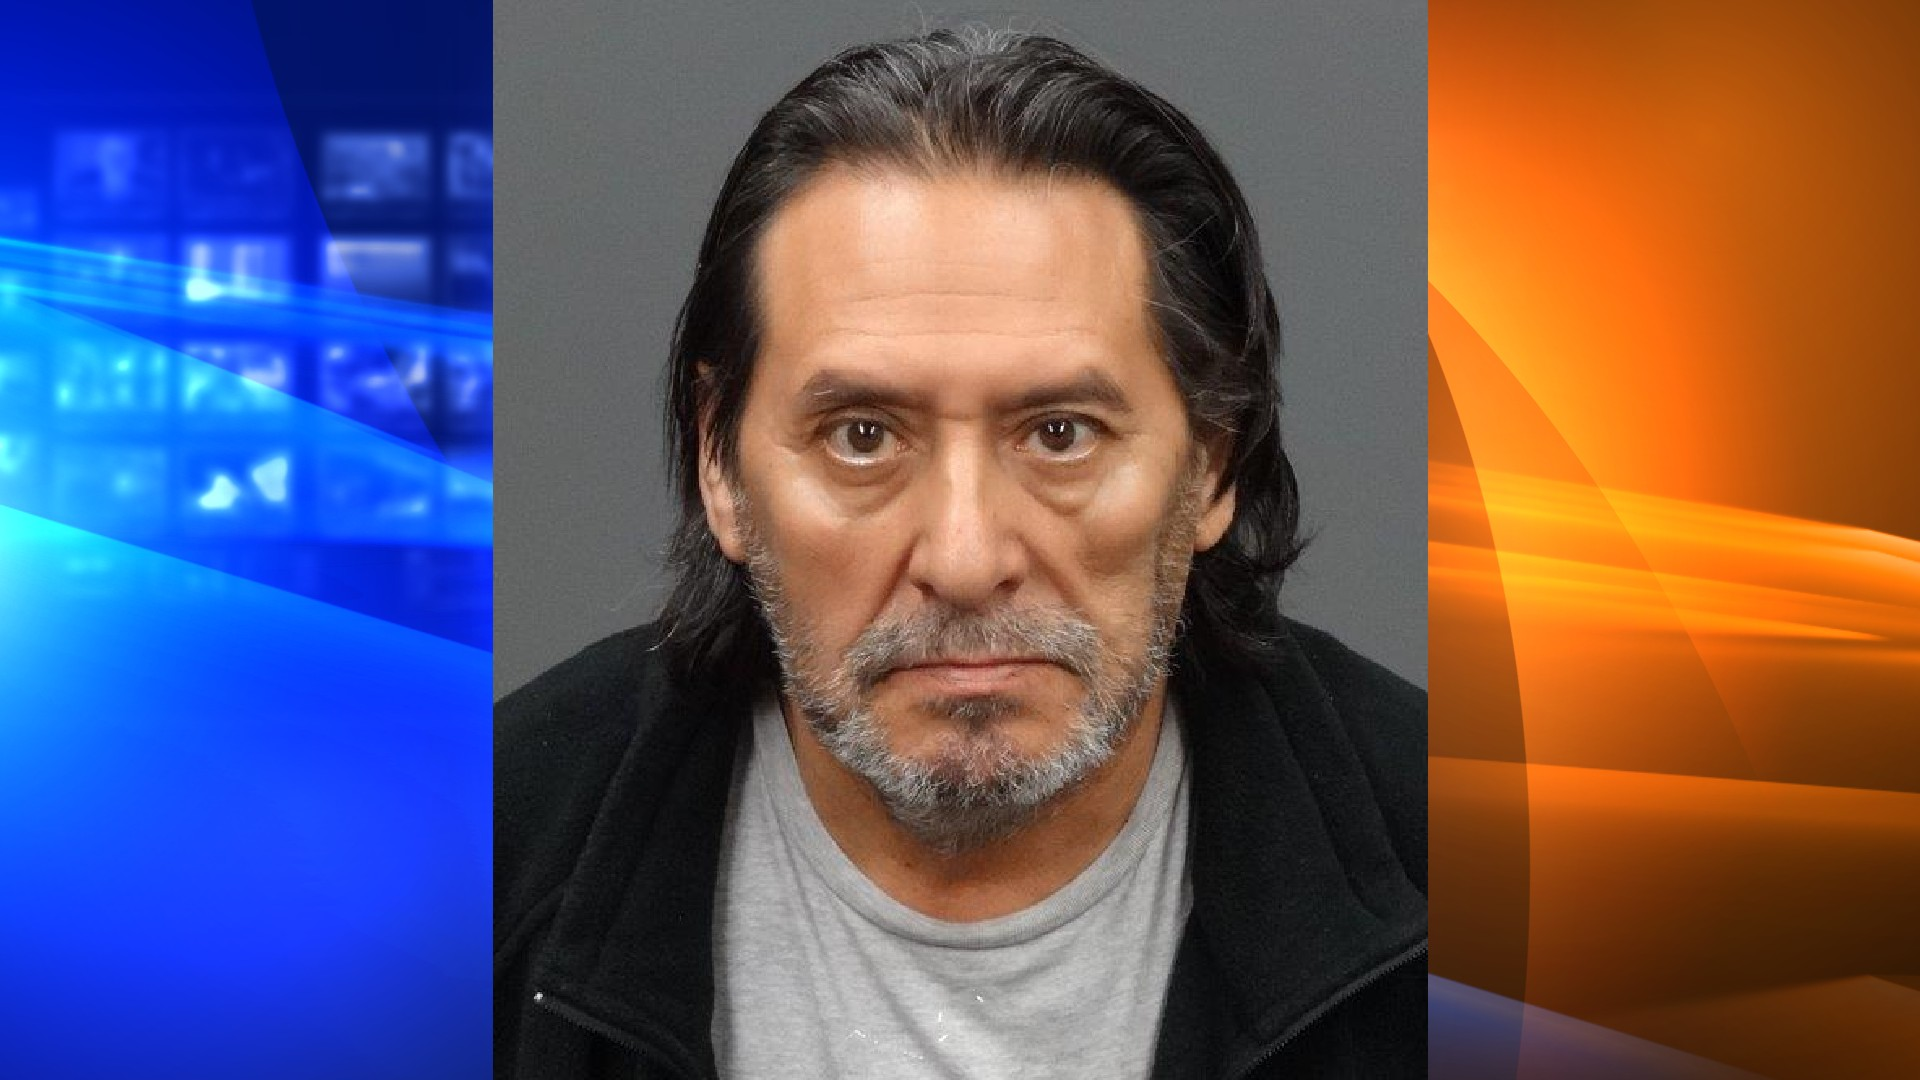 David Diaz, a 68-year-old resident of West Covina, is seen in a booking photo released by the West Covina Police Department on May 13, 2020.